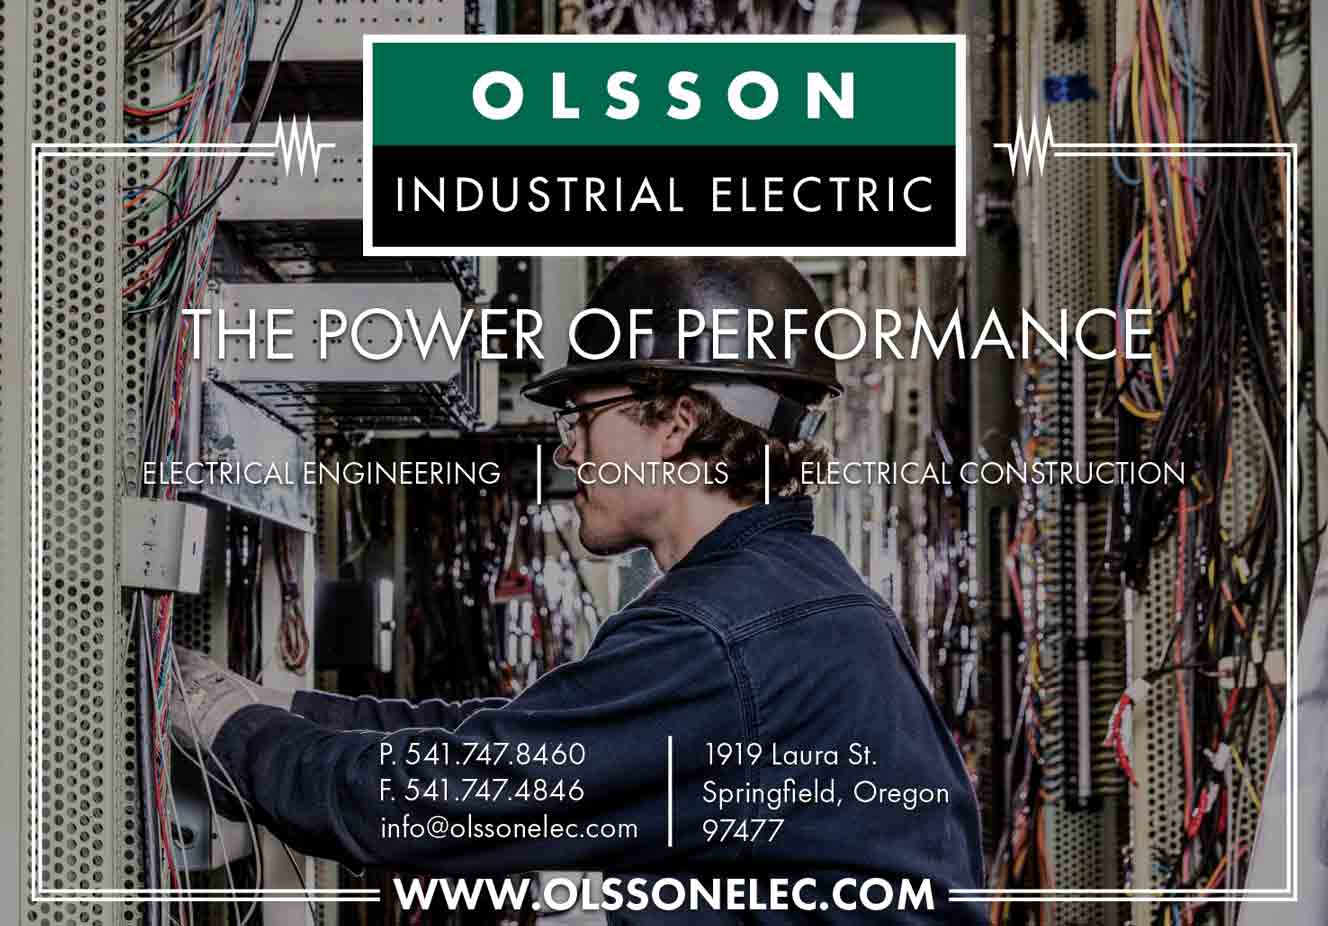 Olsson Industrial Electric Ads